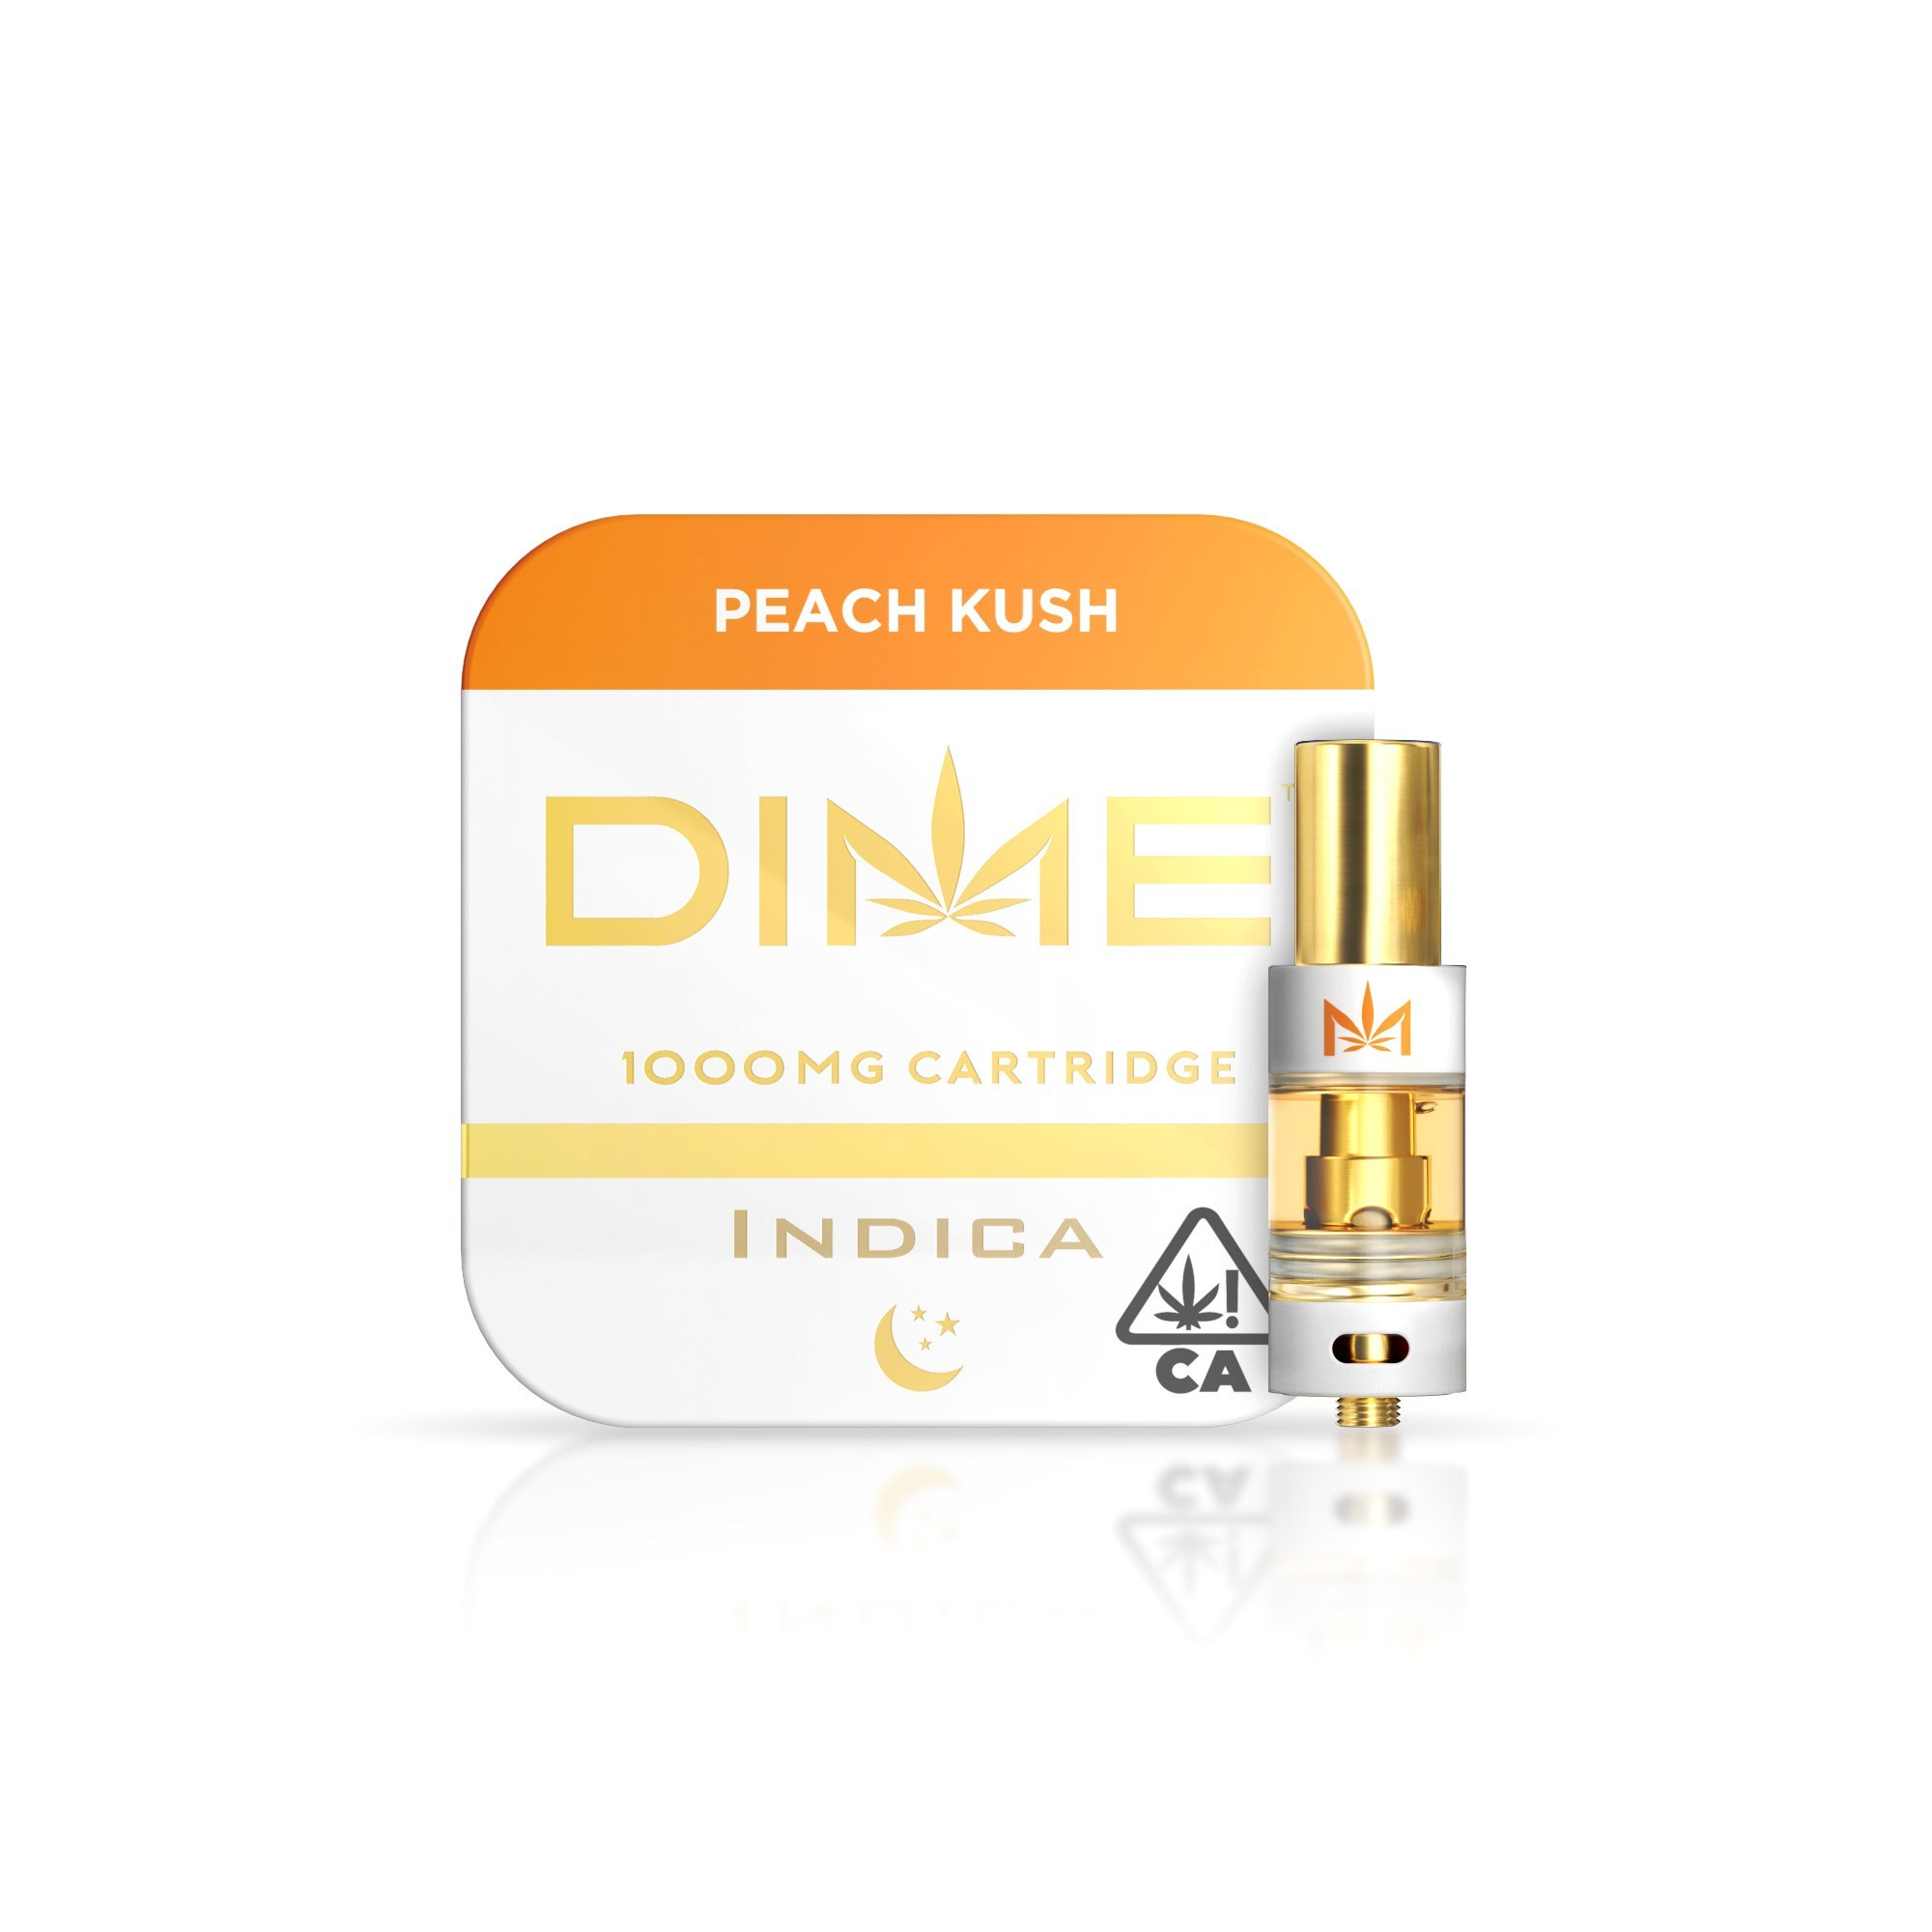 DIME 1000mg Cartridge – Peach Kush